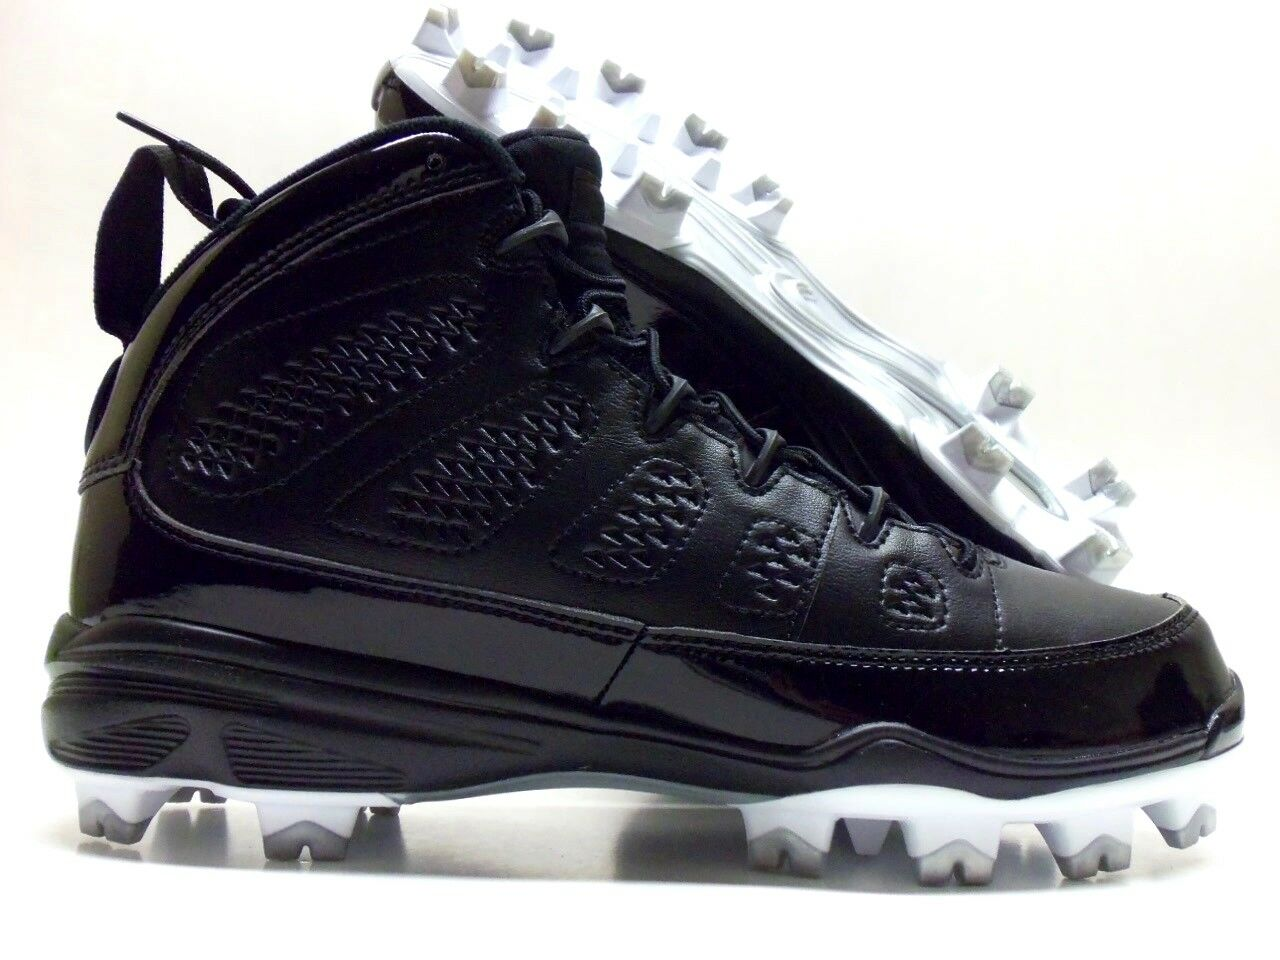 NIKE JORDAN SIZE IX RETRO MCS BASEBALL CLEAT BLACK/WHITE SIZE JORDAN MEN'S 9 [AA1264-011] c2bdd2